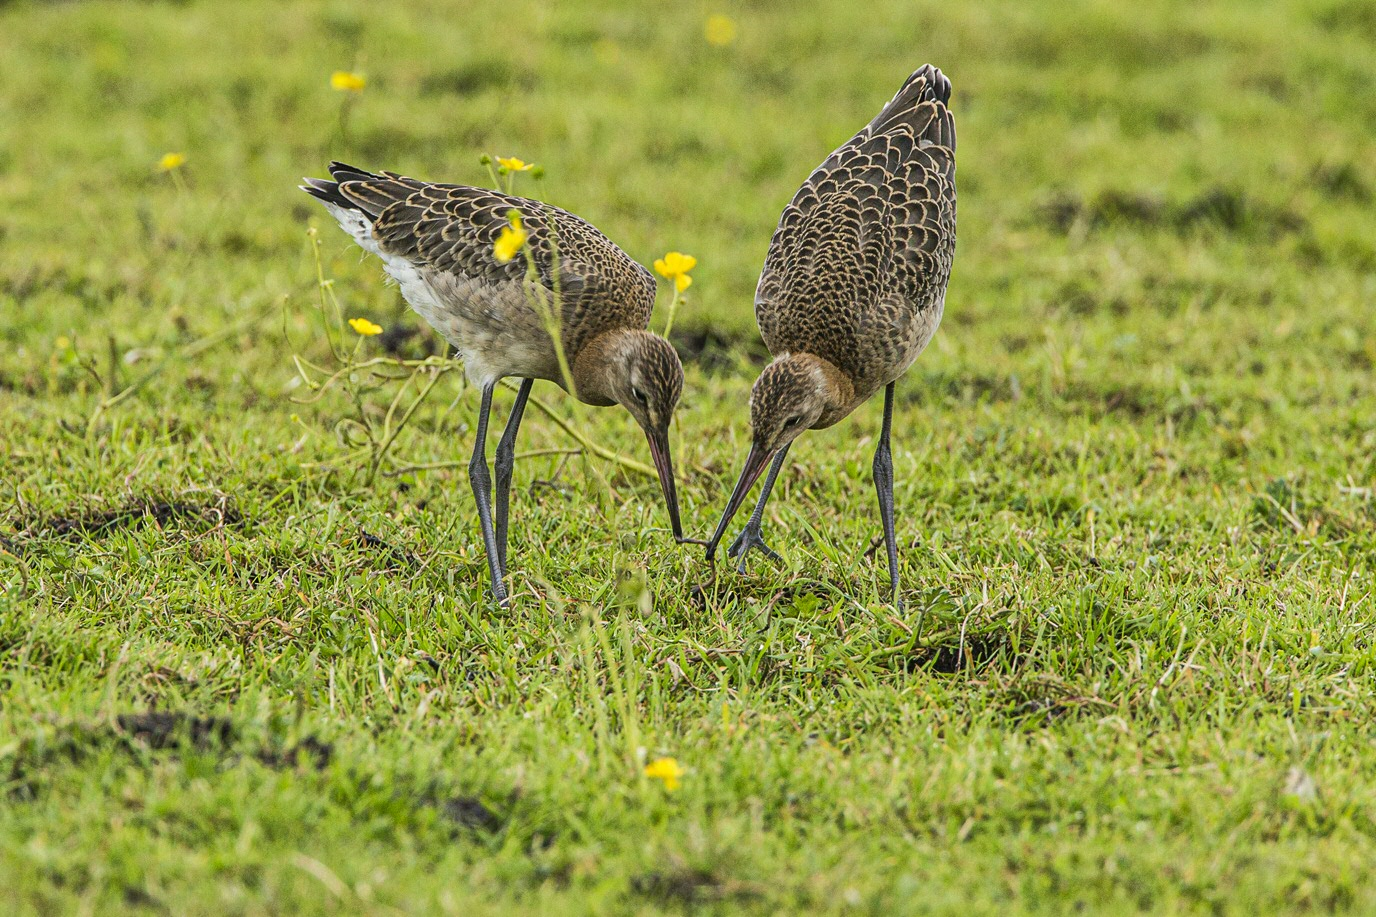 Young black-tailed godwits also learn from one another Photo: Jan van de Kam